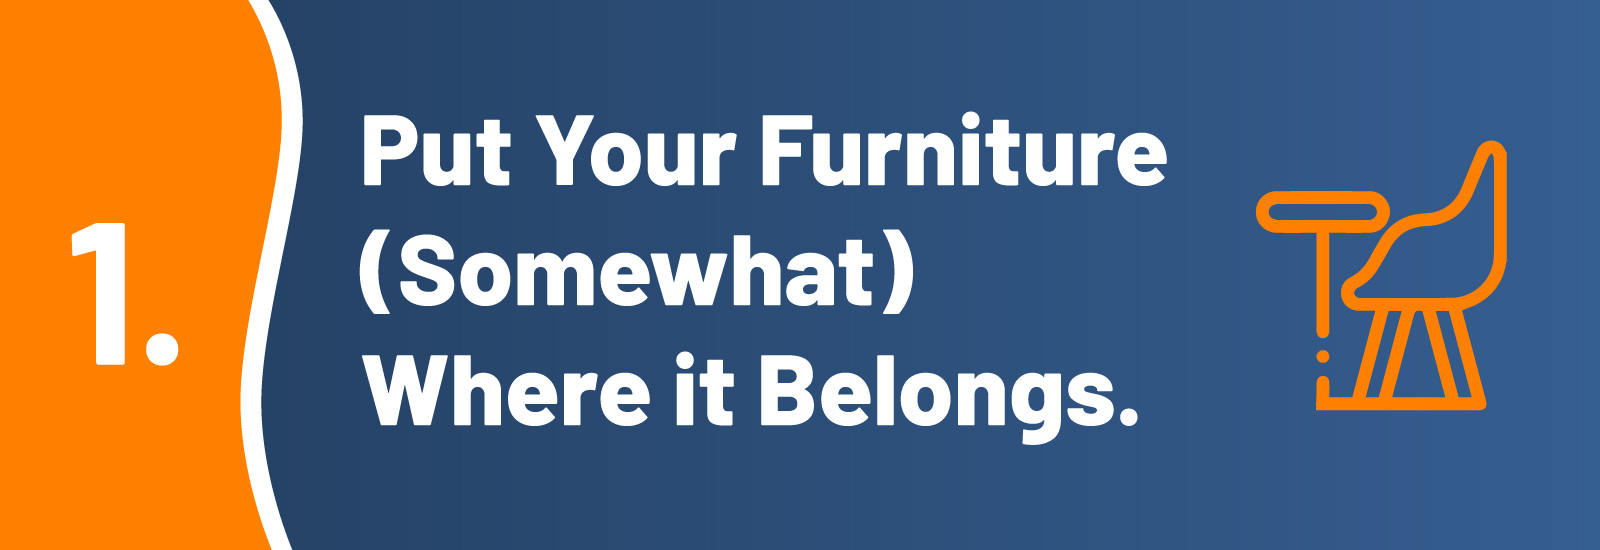 11 Things to Do After Moving in - #1 Put Your Furniture (Somewhat) Where it Belongs